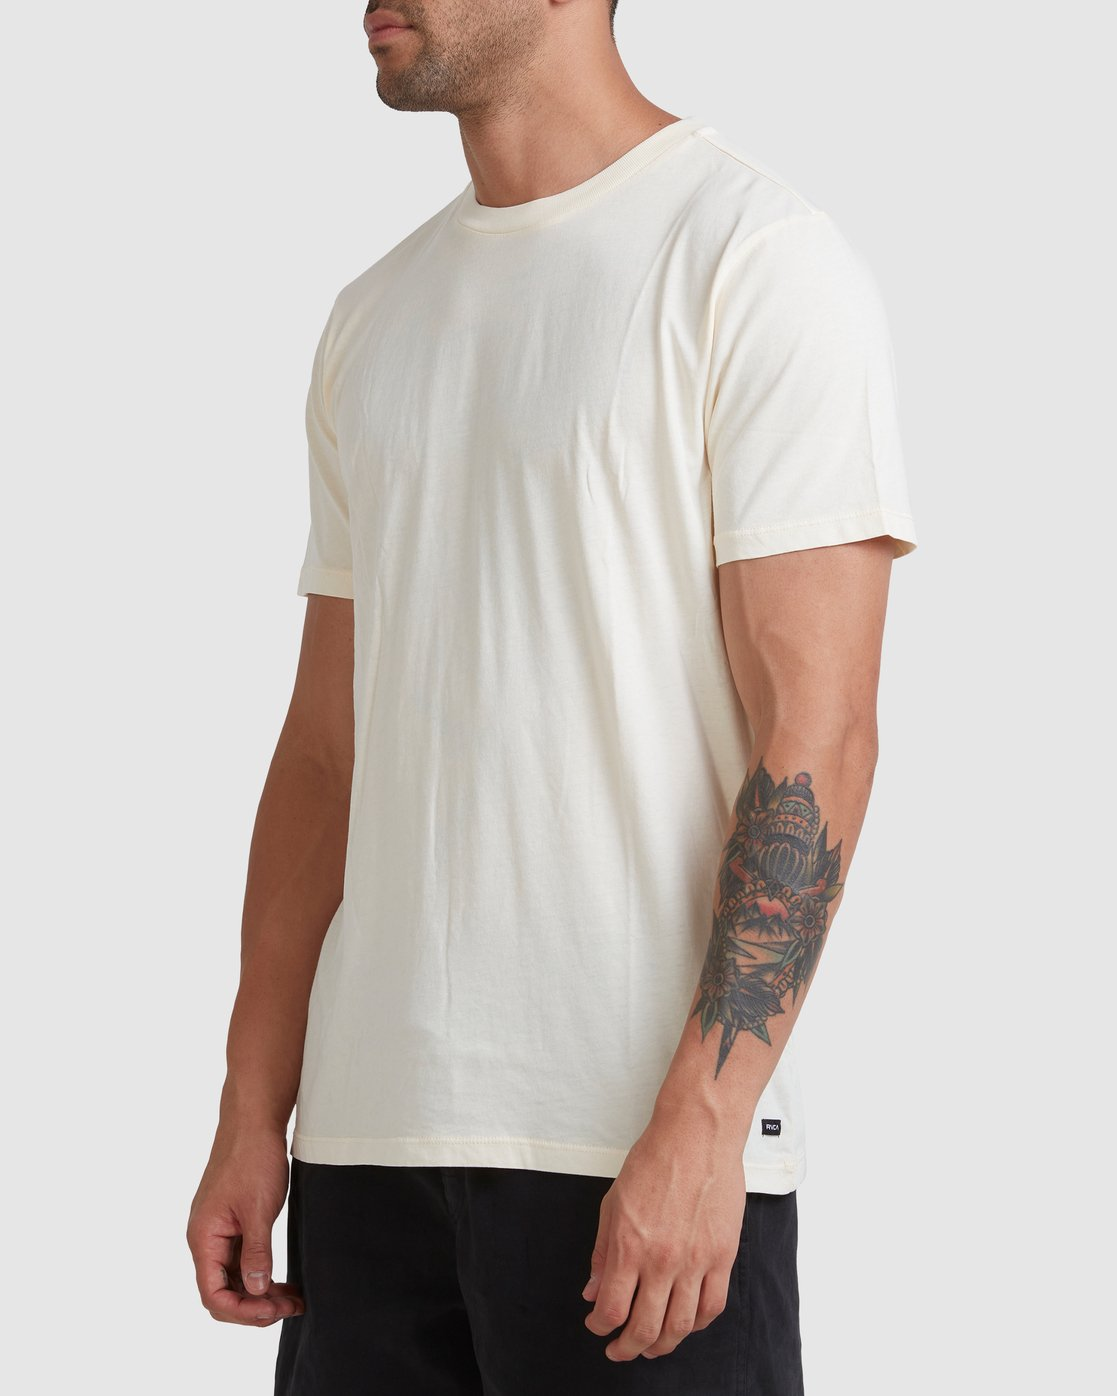 1 Rvca Washed Short Sleeve Tee White R105050 RVCA